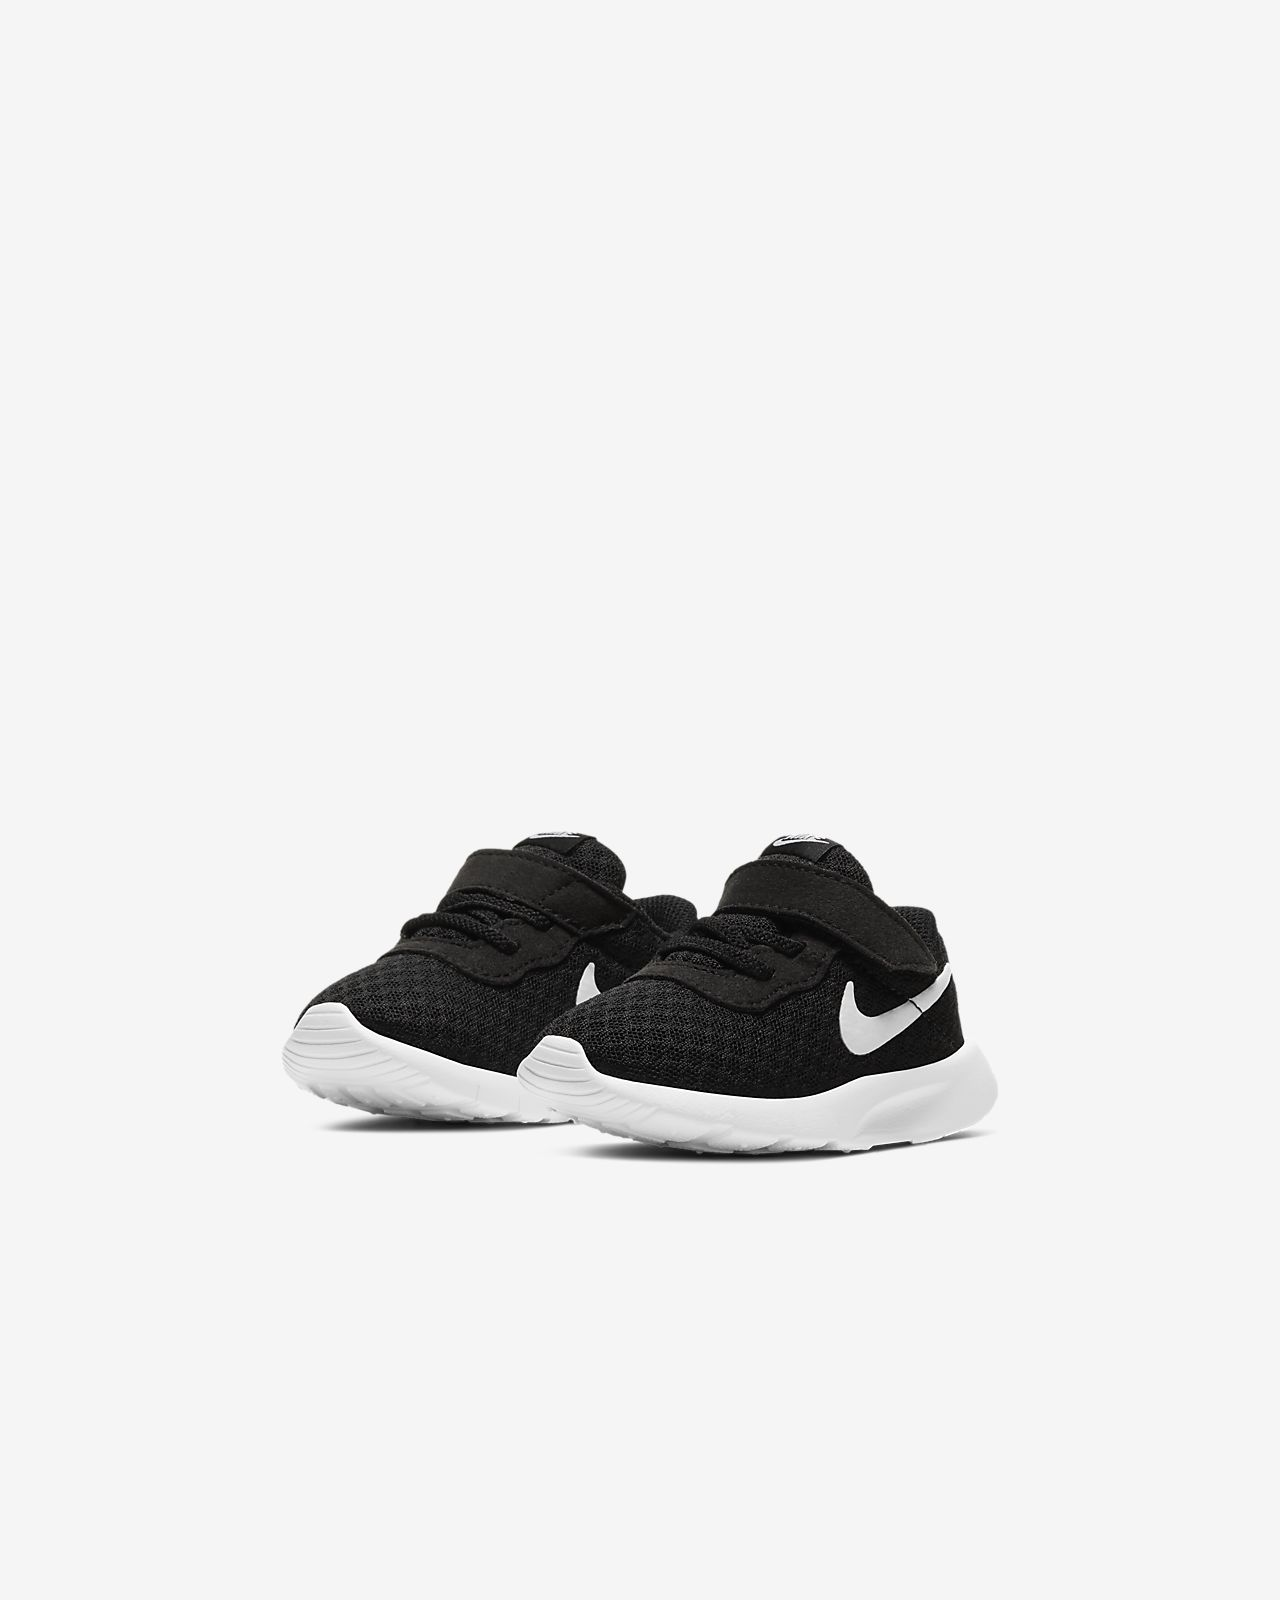 Nike Tanjun (1.5 9.5) Baby & Toddler Shoe